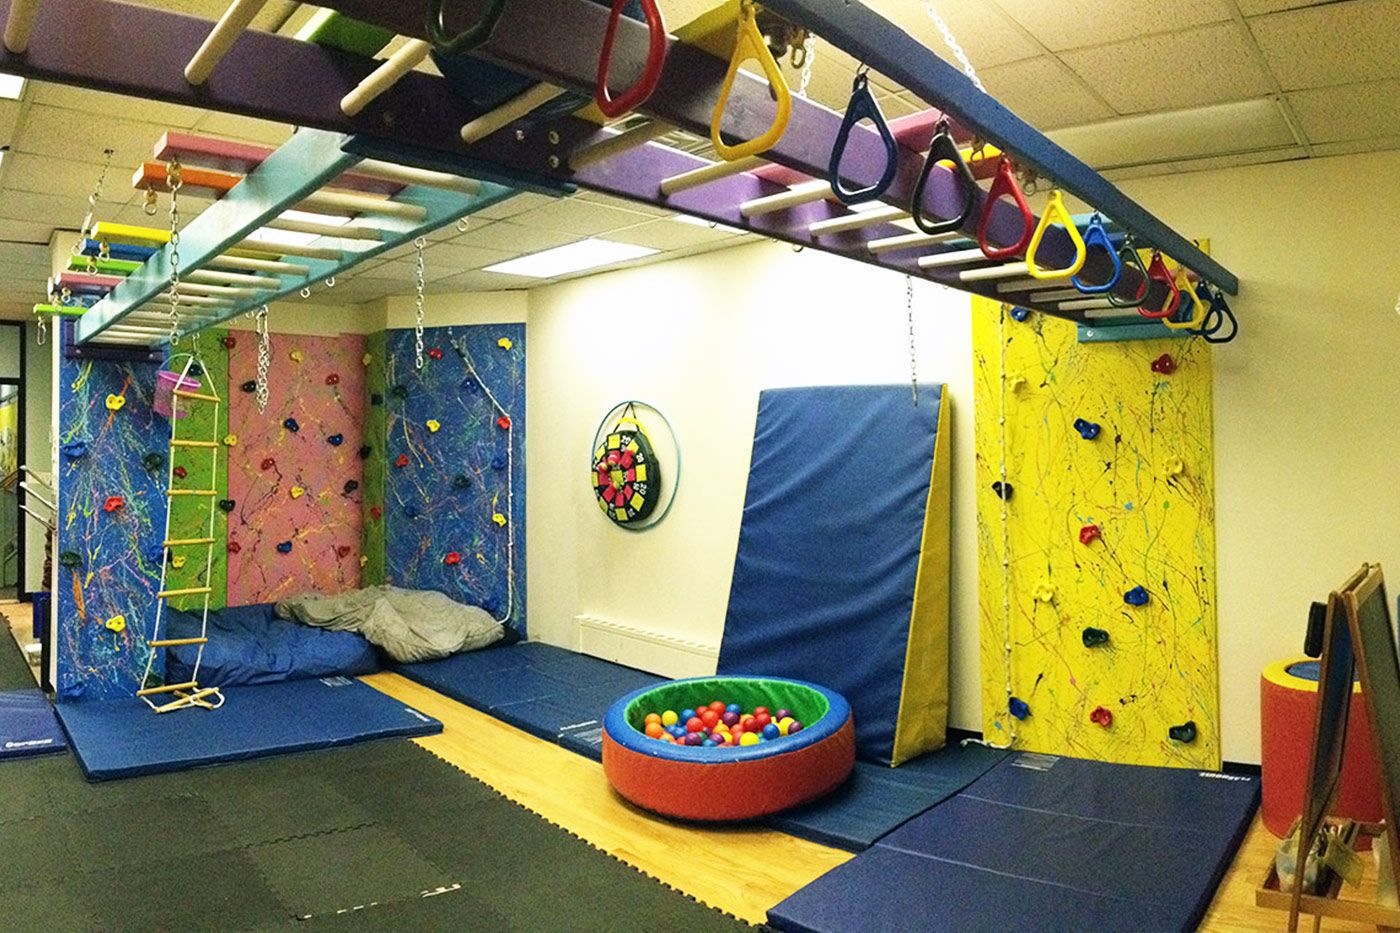 Theraplay Gym view | Sensory gym | Pinterest | Gym, Basements and ...